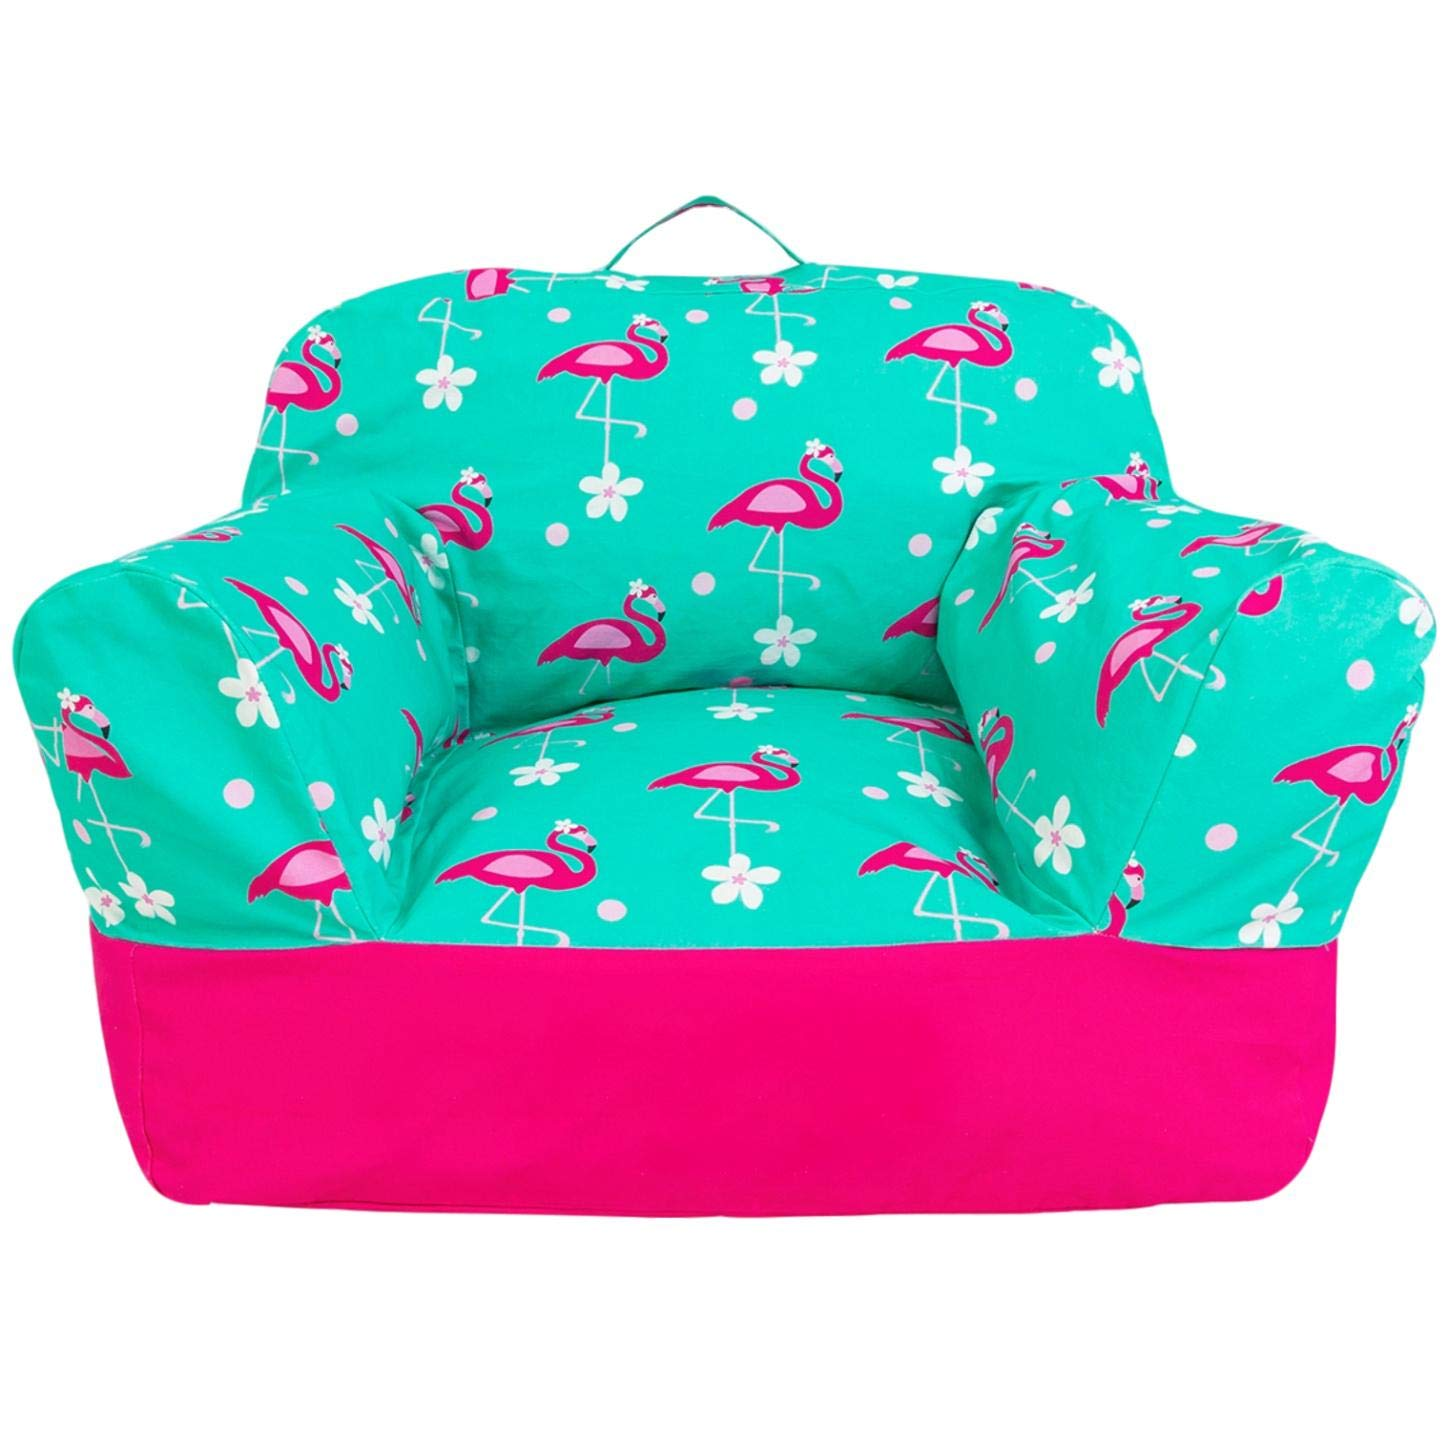 Yayme! Blue Green Alligator Crocodile Beanbag Chair Cover | Our Bean Bag for Boys is Comfy and Shaped Like an Armchair | This Cute Design Will Make Every Little Boy's Room Fun BBC3440